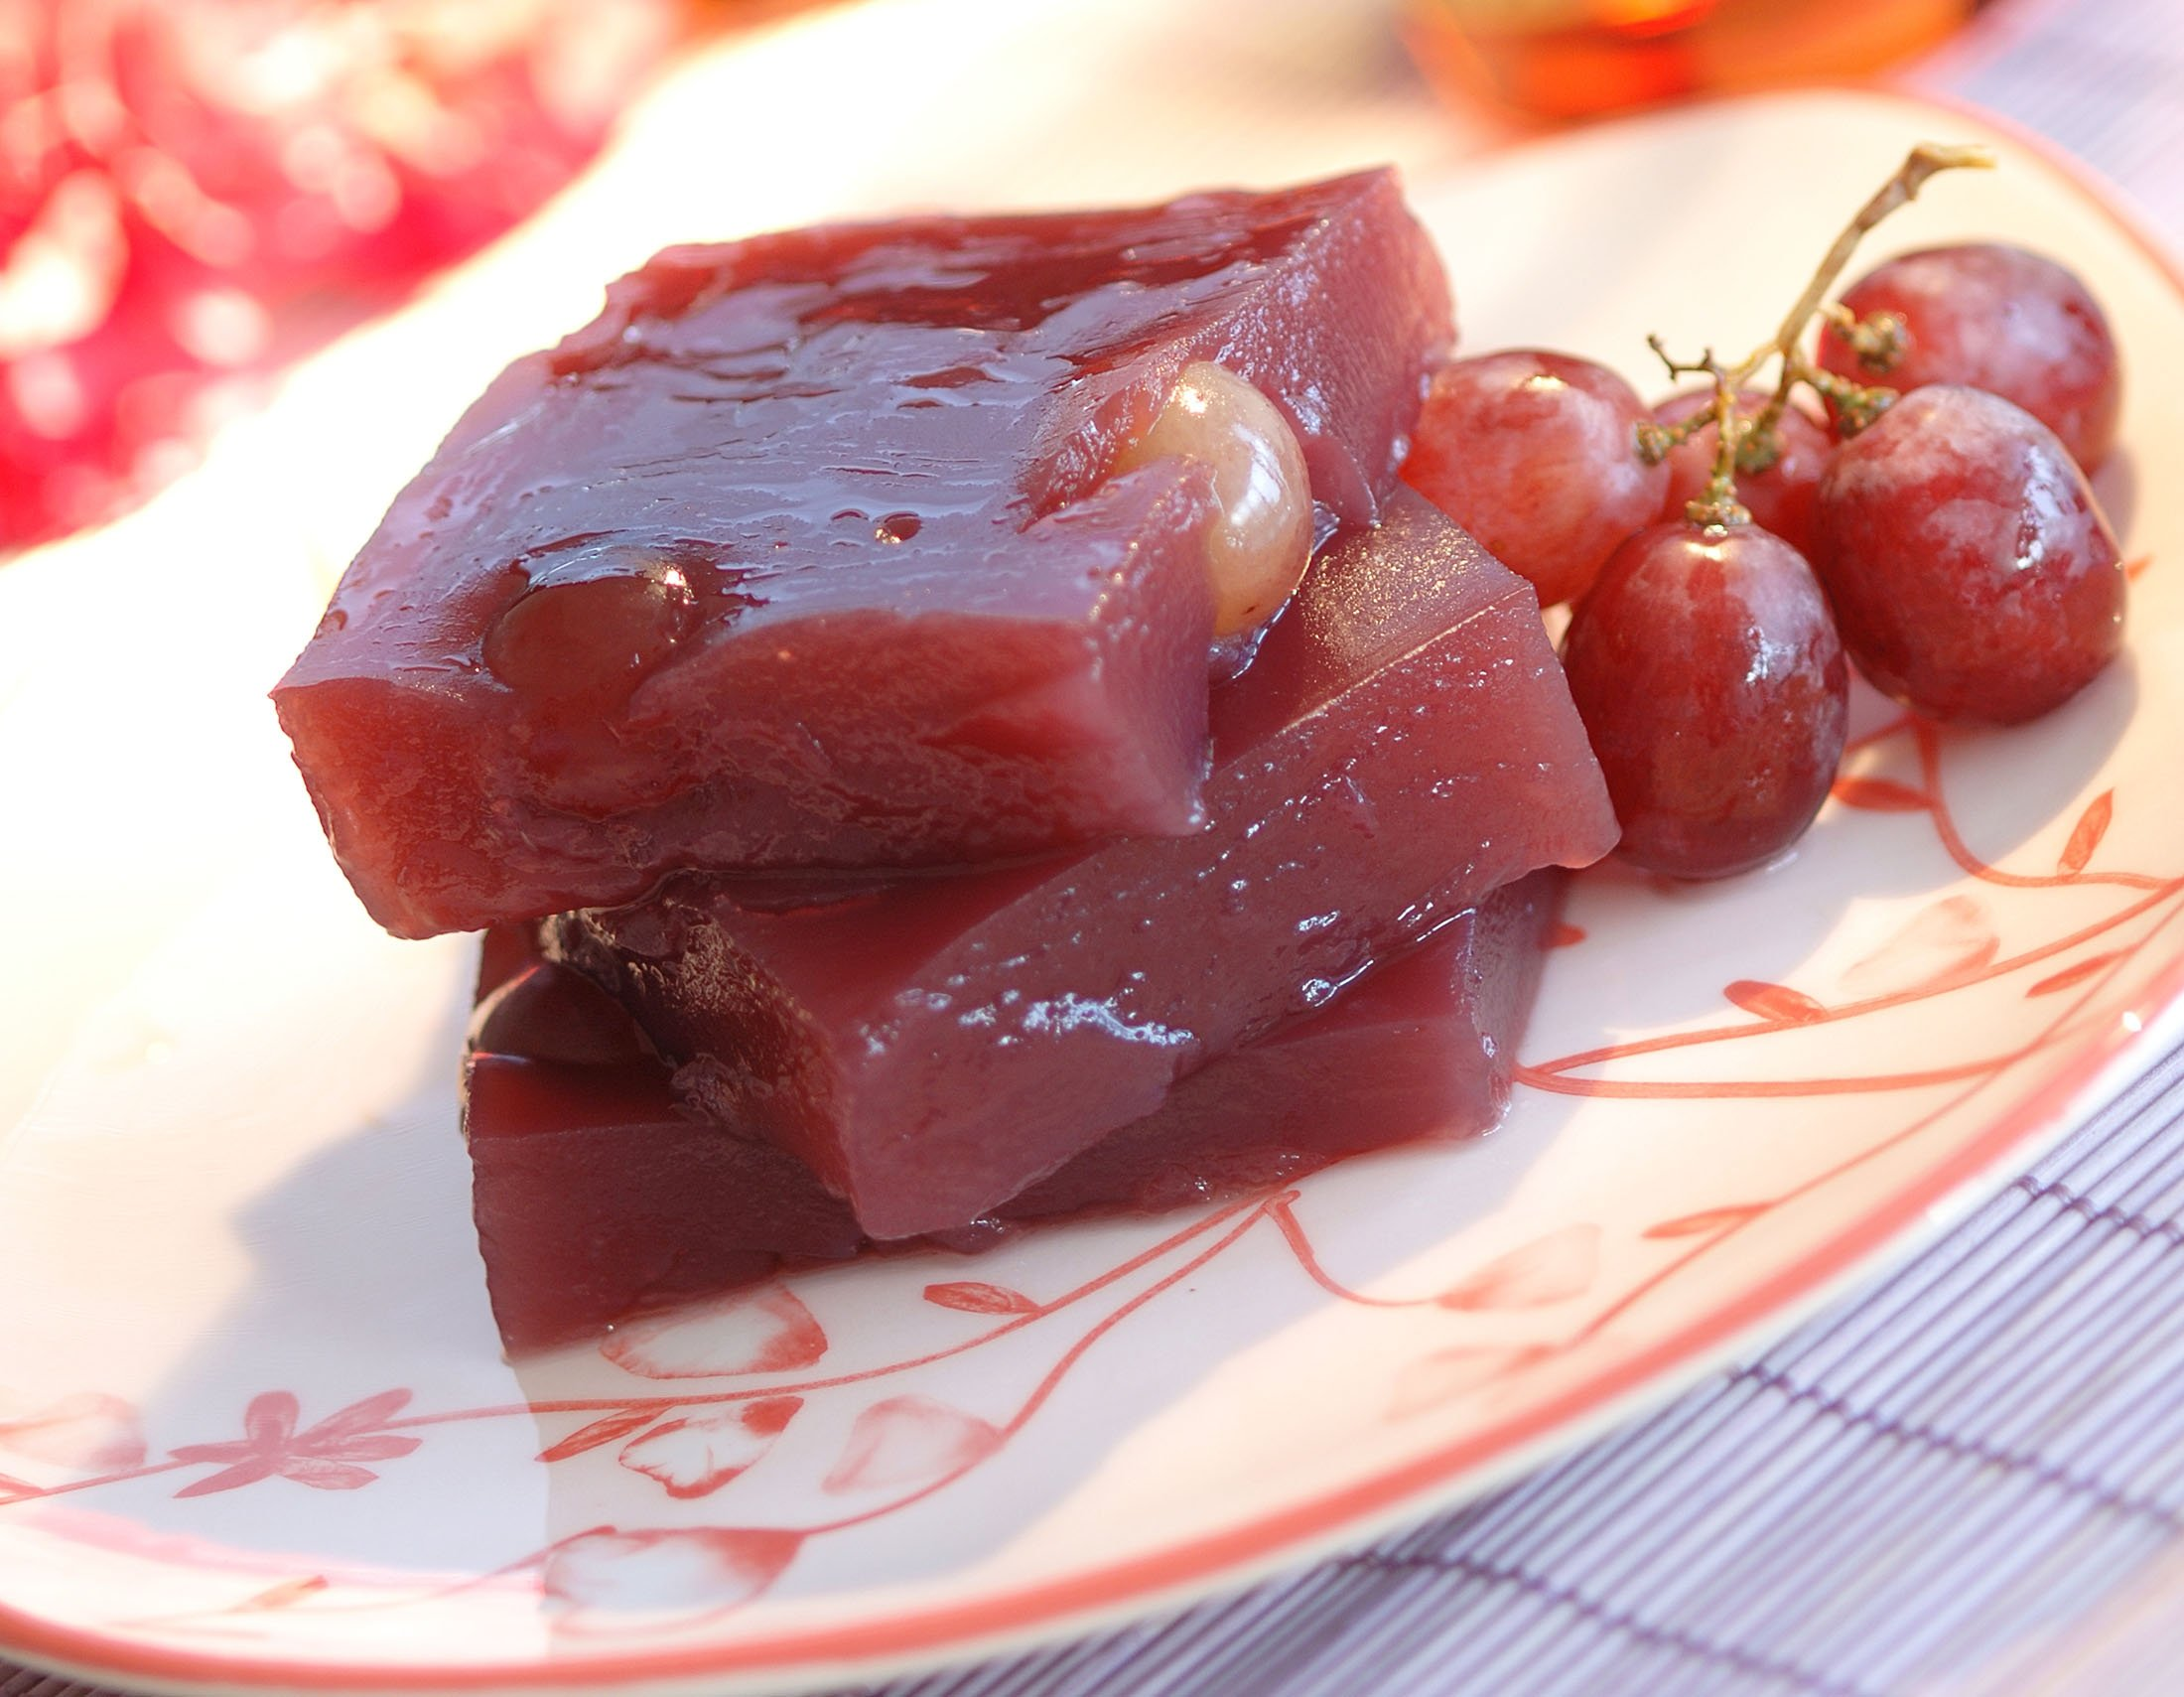 Pepeçura is a pudding in Turkish cuisine and a specialty of the eastern Black Sea region. (Shutterstock Photo)